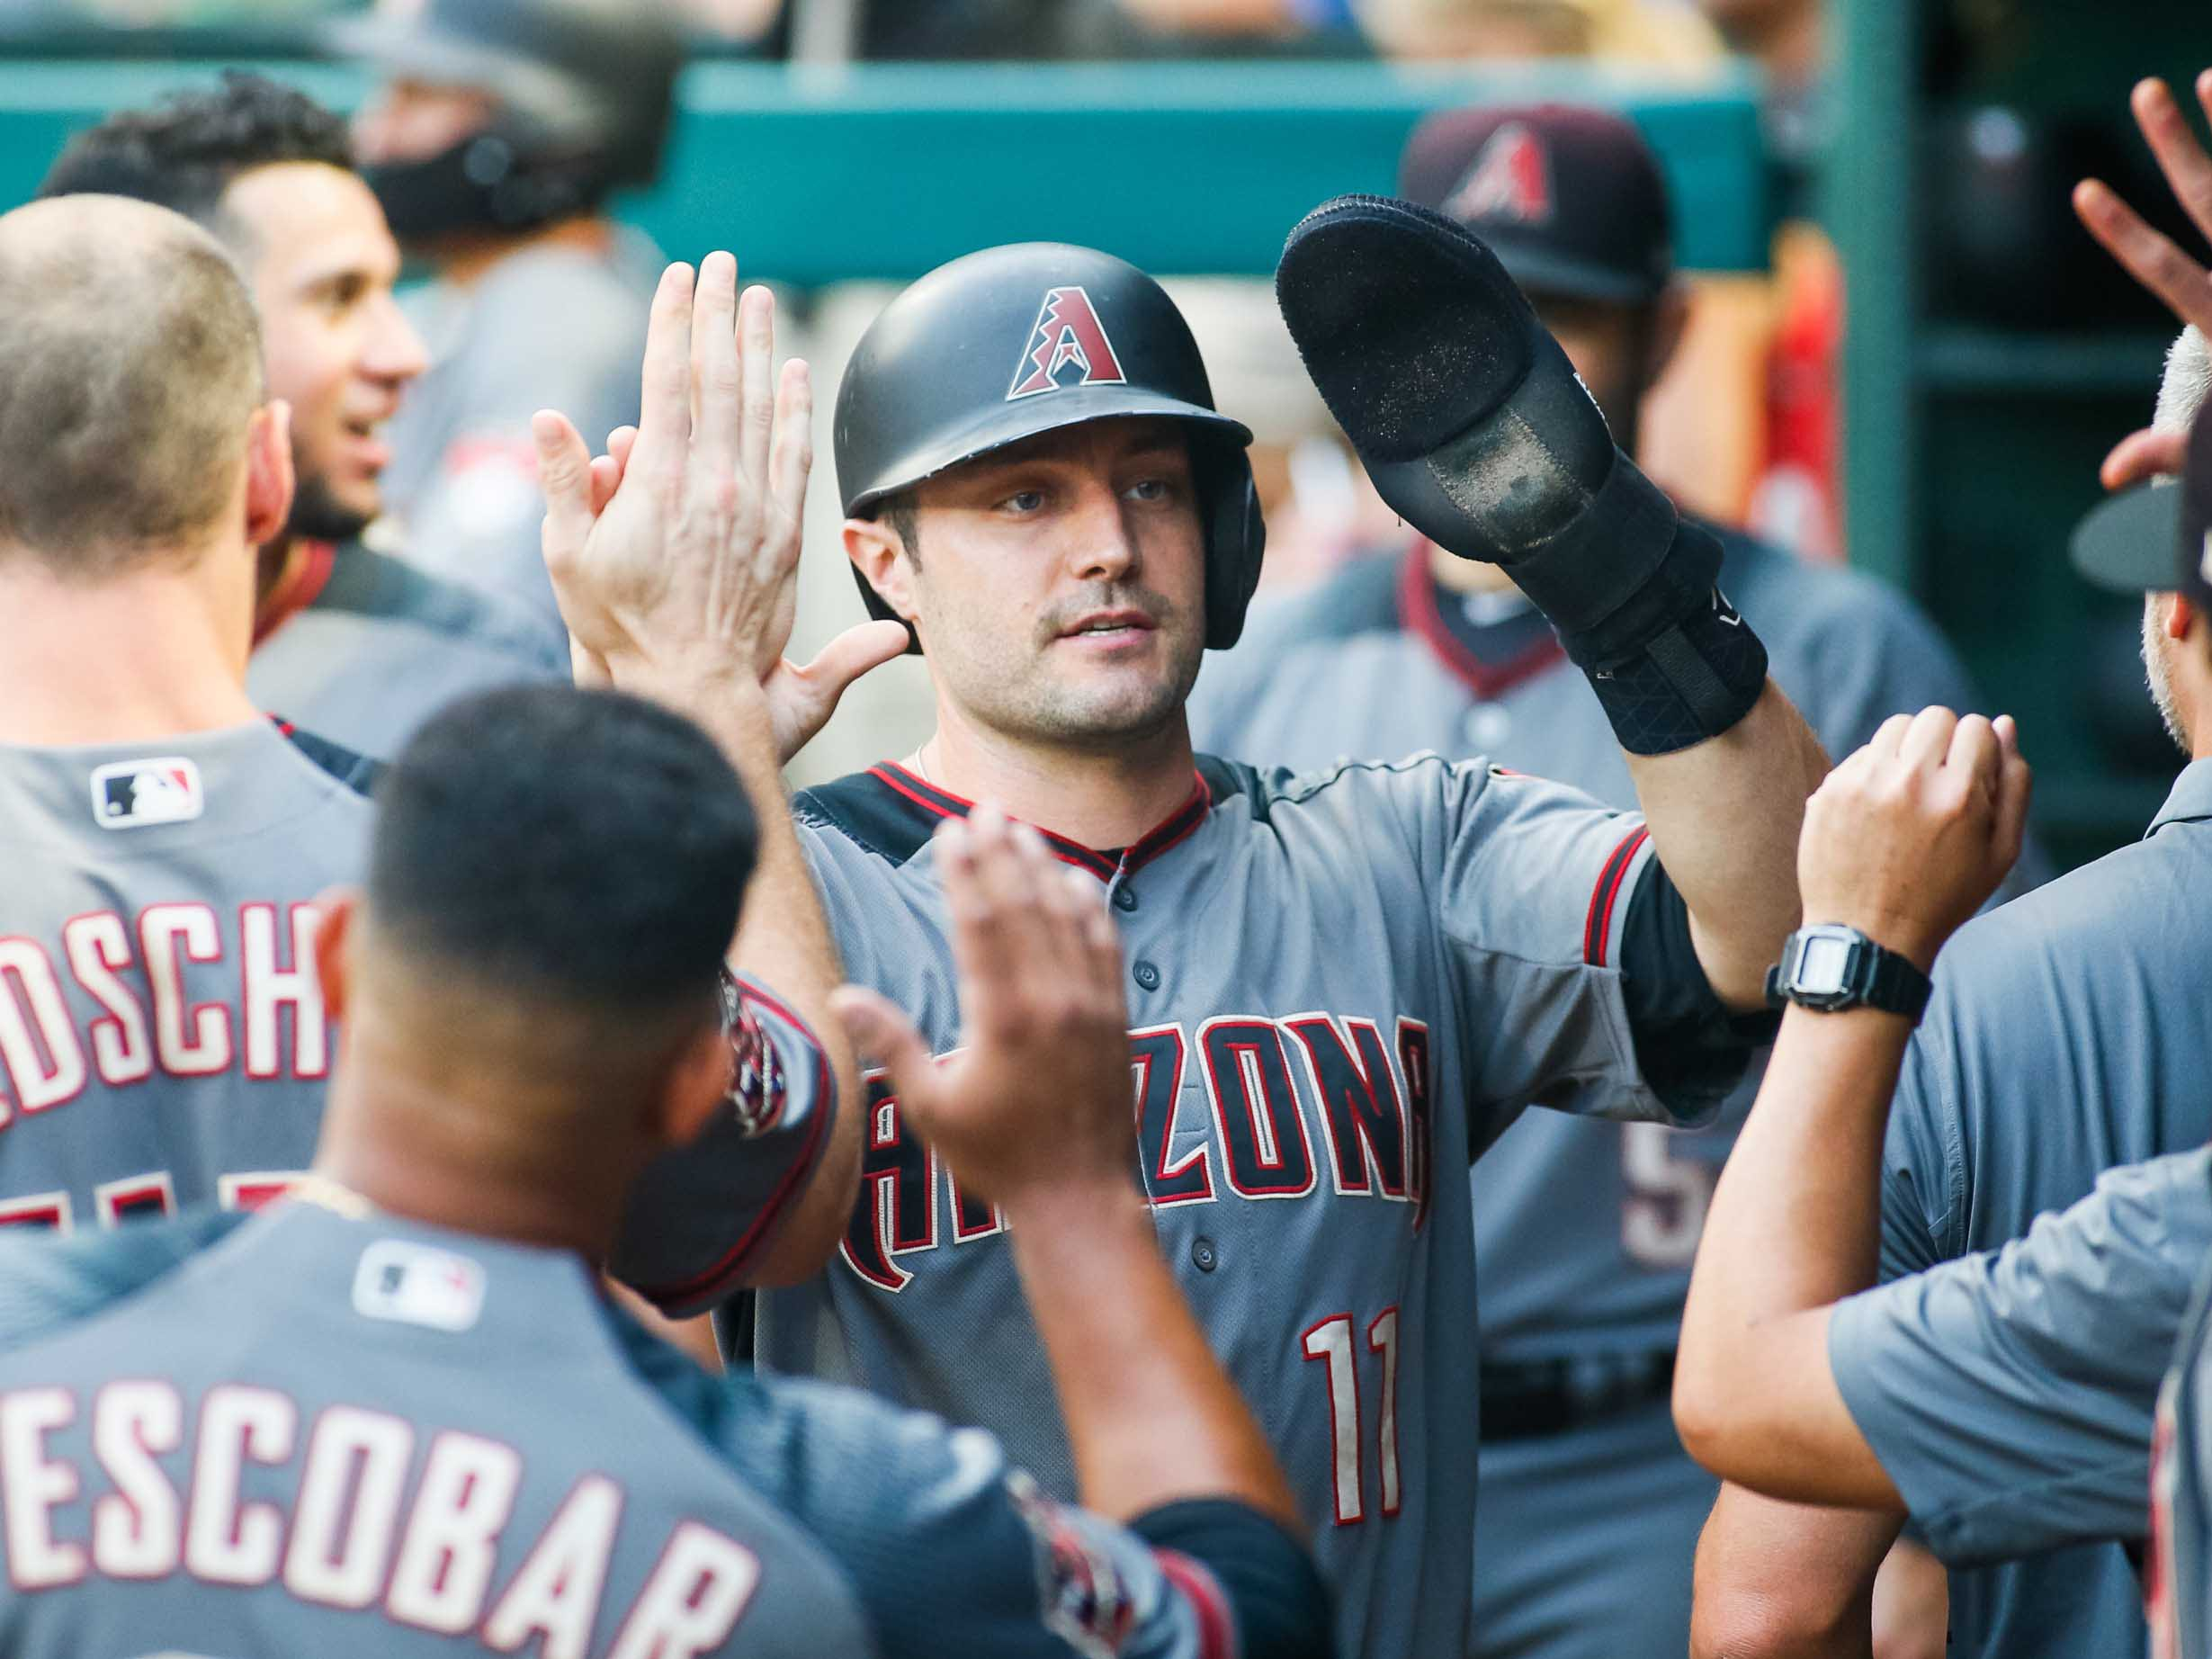 Aug 13, 2018; Arlington, TX, USA; Arizona Diamondbacks center fielder A.J. Pollock (11) is greeted in the dugout after scoring in the first inning against the Texas Rangers at Globe Life Park in Arlington. Mandatory Credit: Ray Carlin-USA TODAY Sports